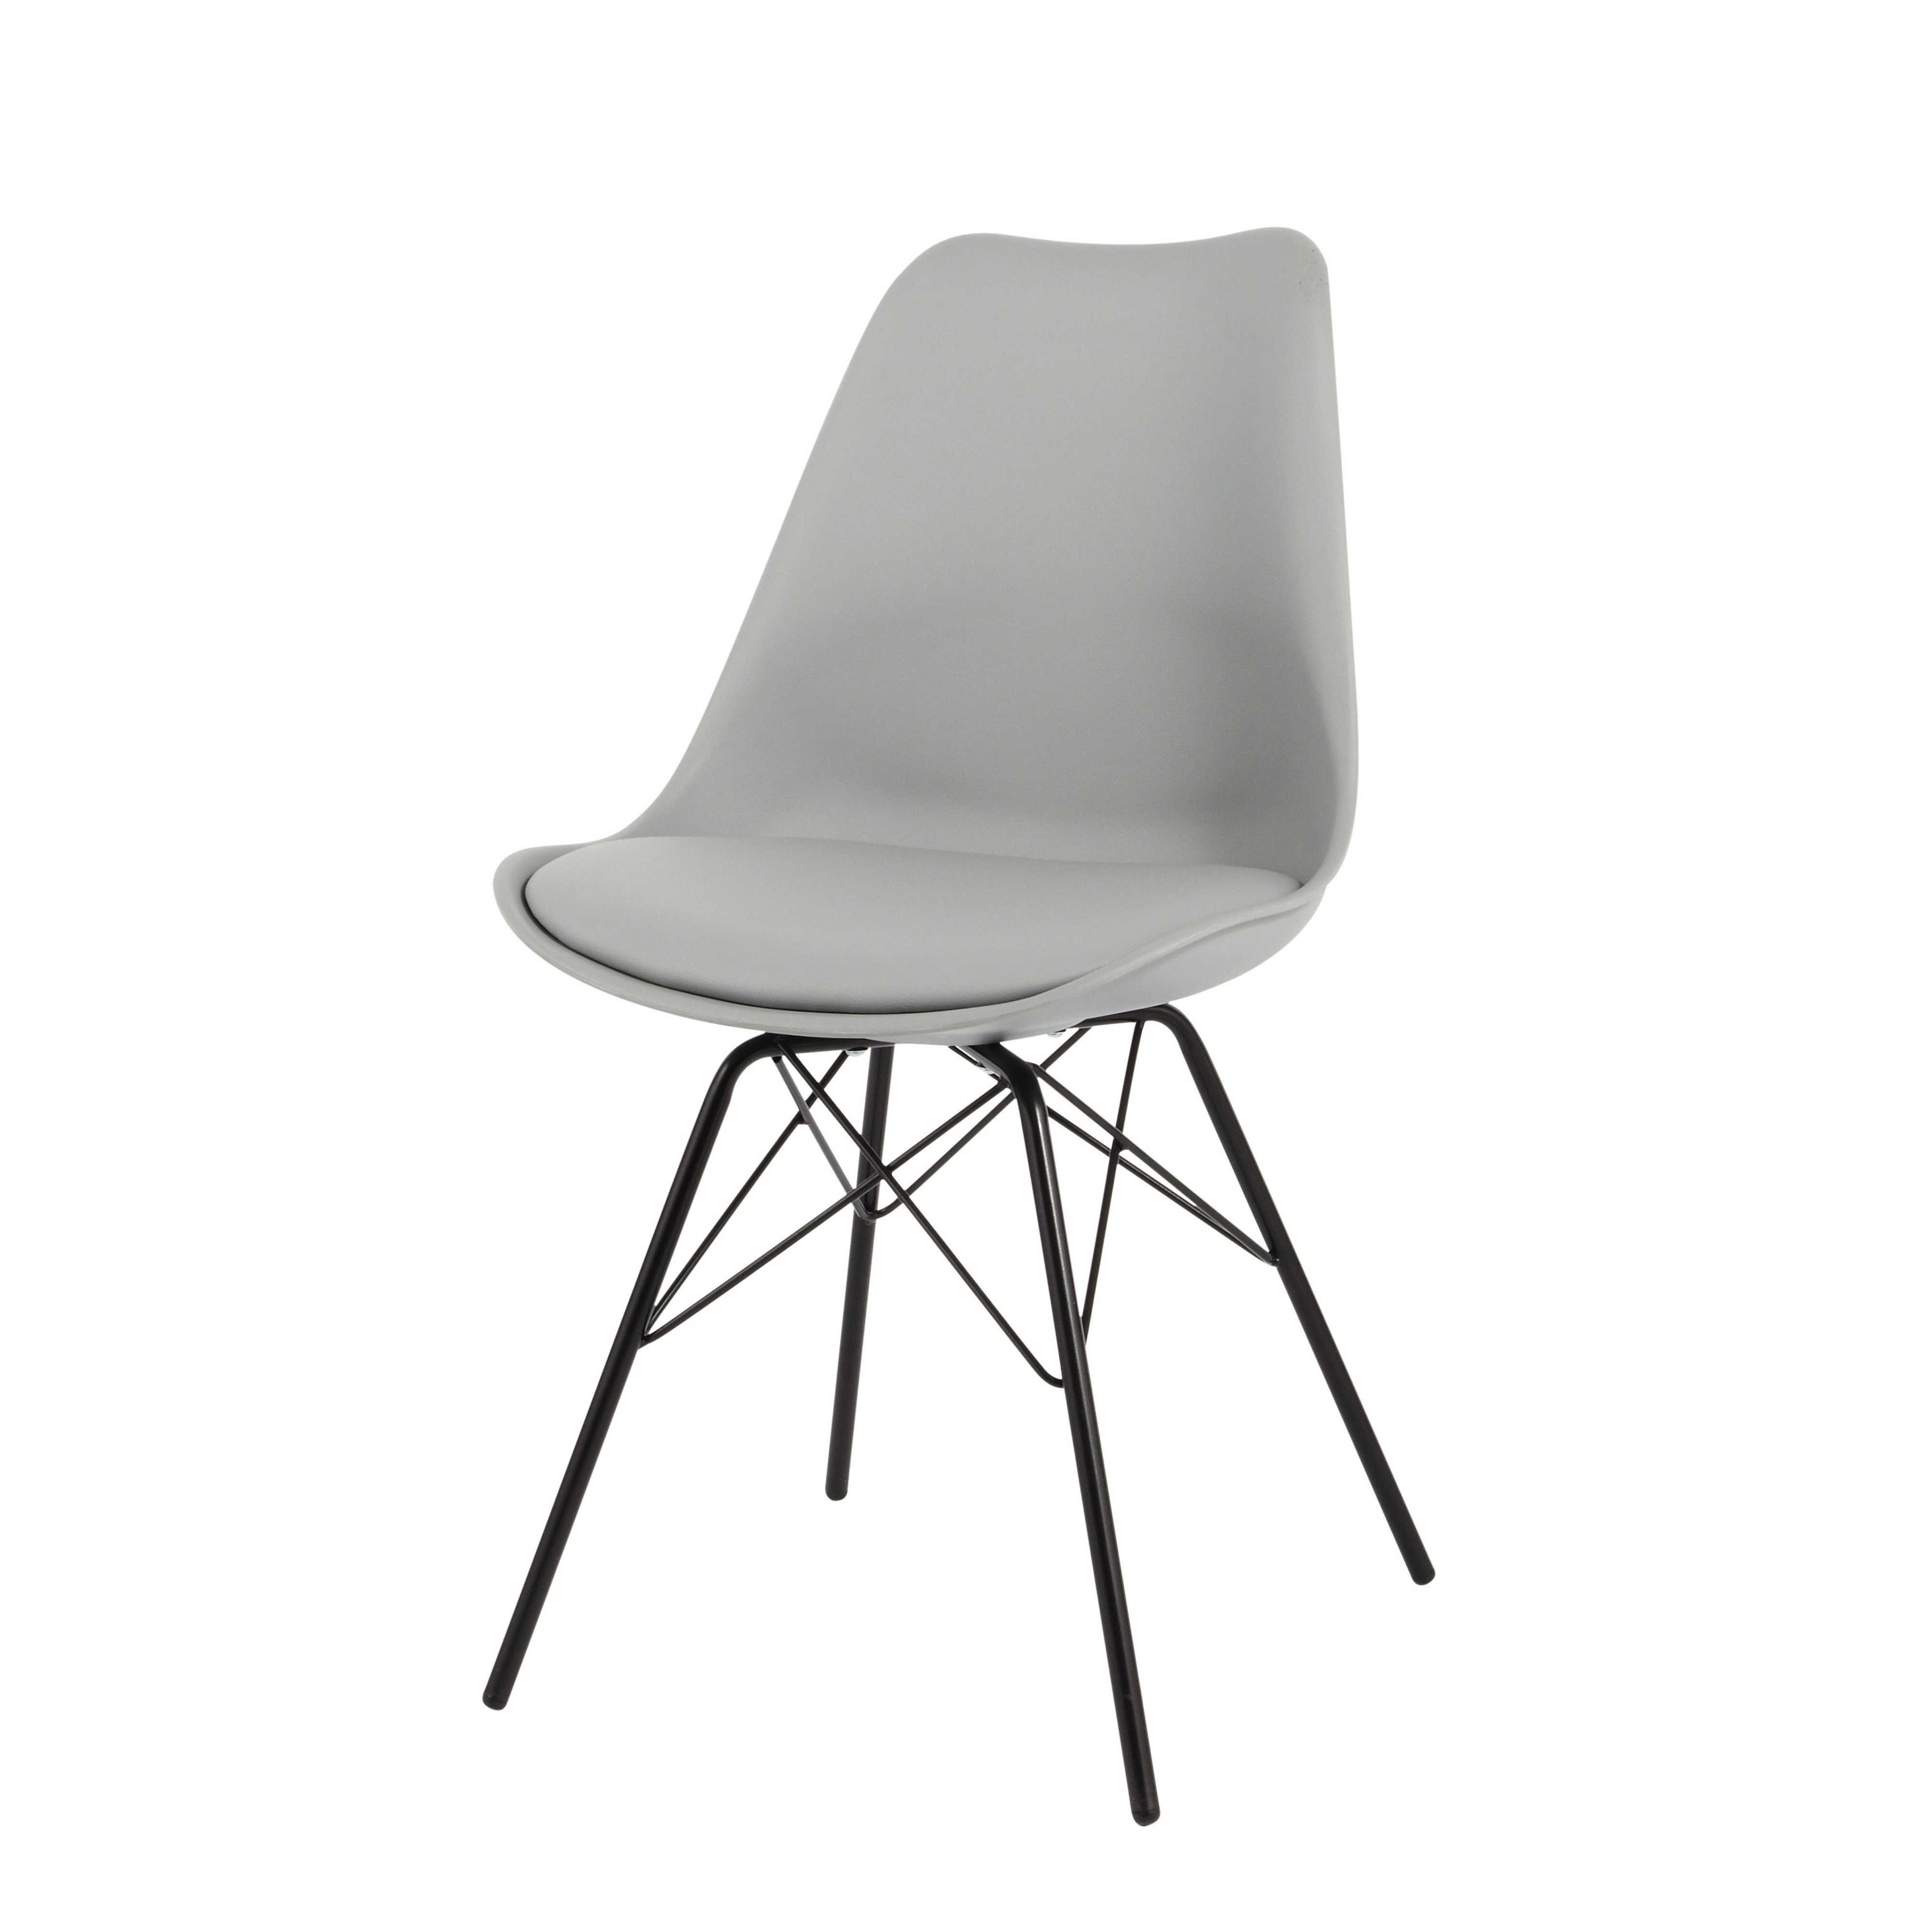 chaise en polypropylne et mtal grise coventry - Chaise Metal